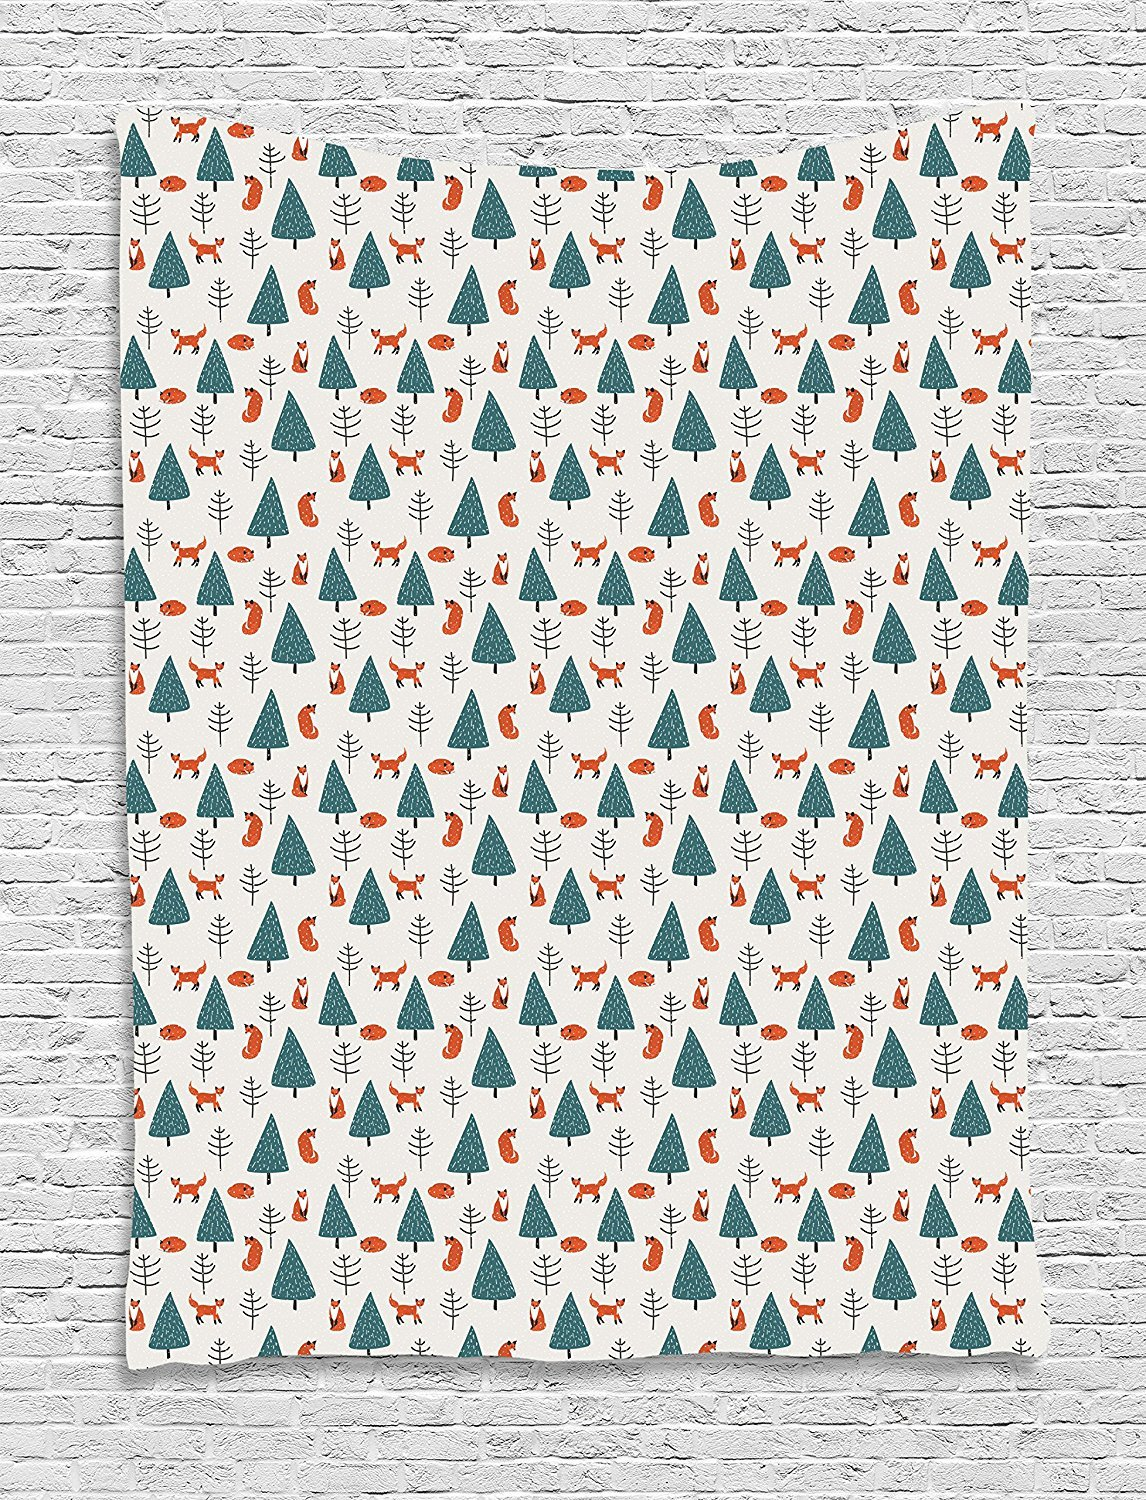 asddcdfdd Fox Tapestry, Cute Orange Foxes in a Snowy Winter Forest Animals of Cold Climates Cartoon, Wall Hanging for Bedroom Living Room Dorm, 60 W X 80 L Inches, Teal Orange Black